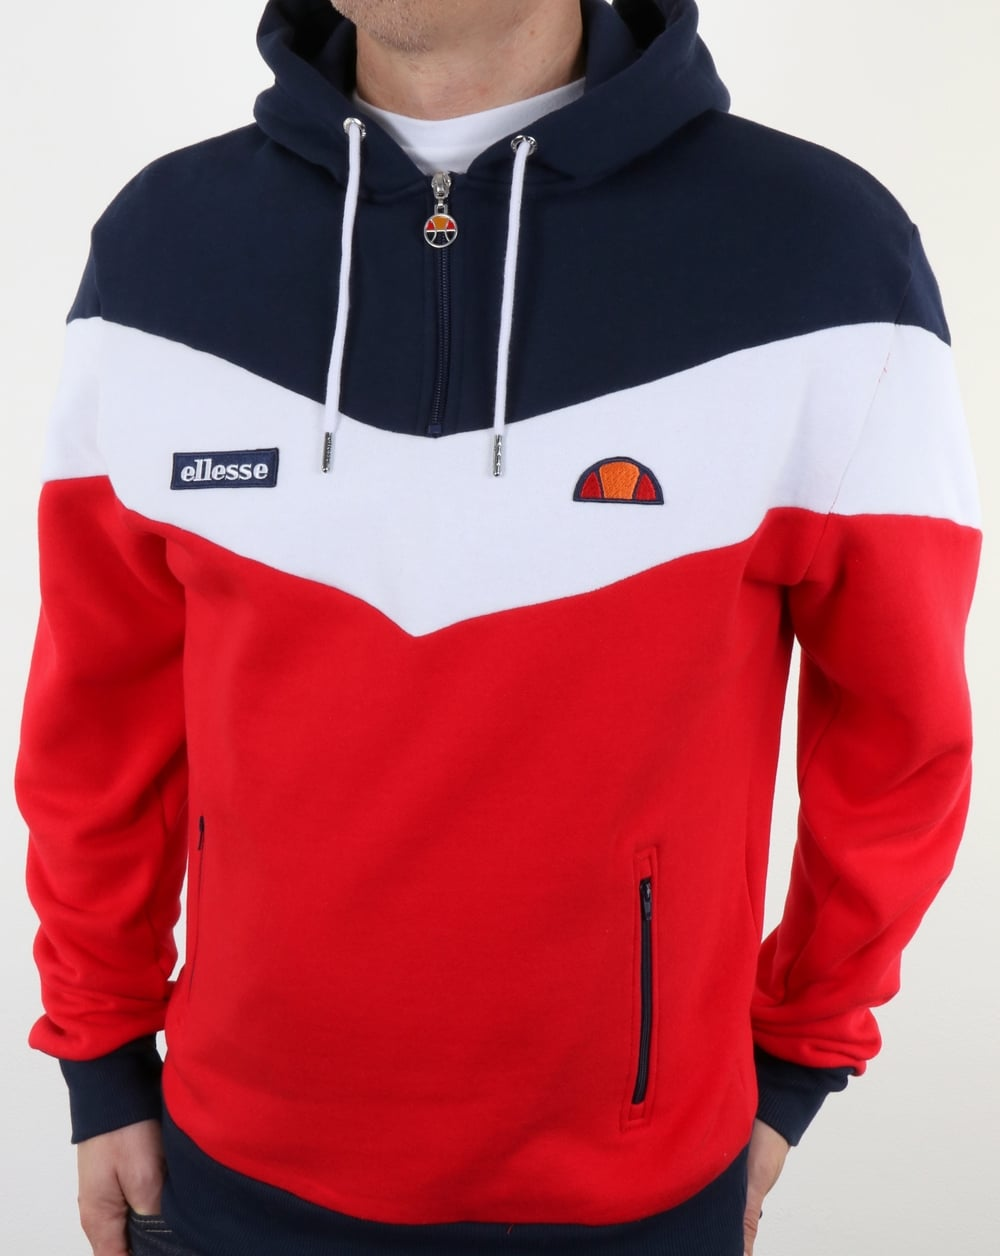 2e9a96a2eb Ellesse Caserta Hoody Red/White/Navy